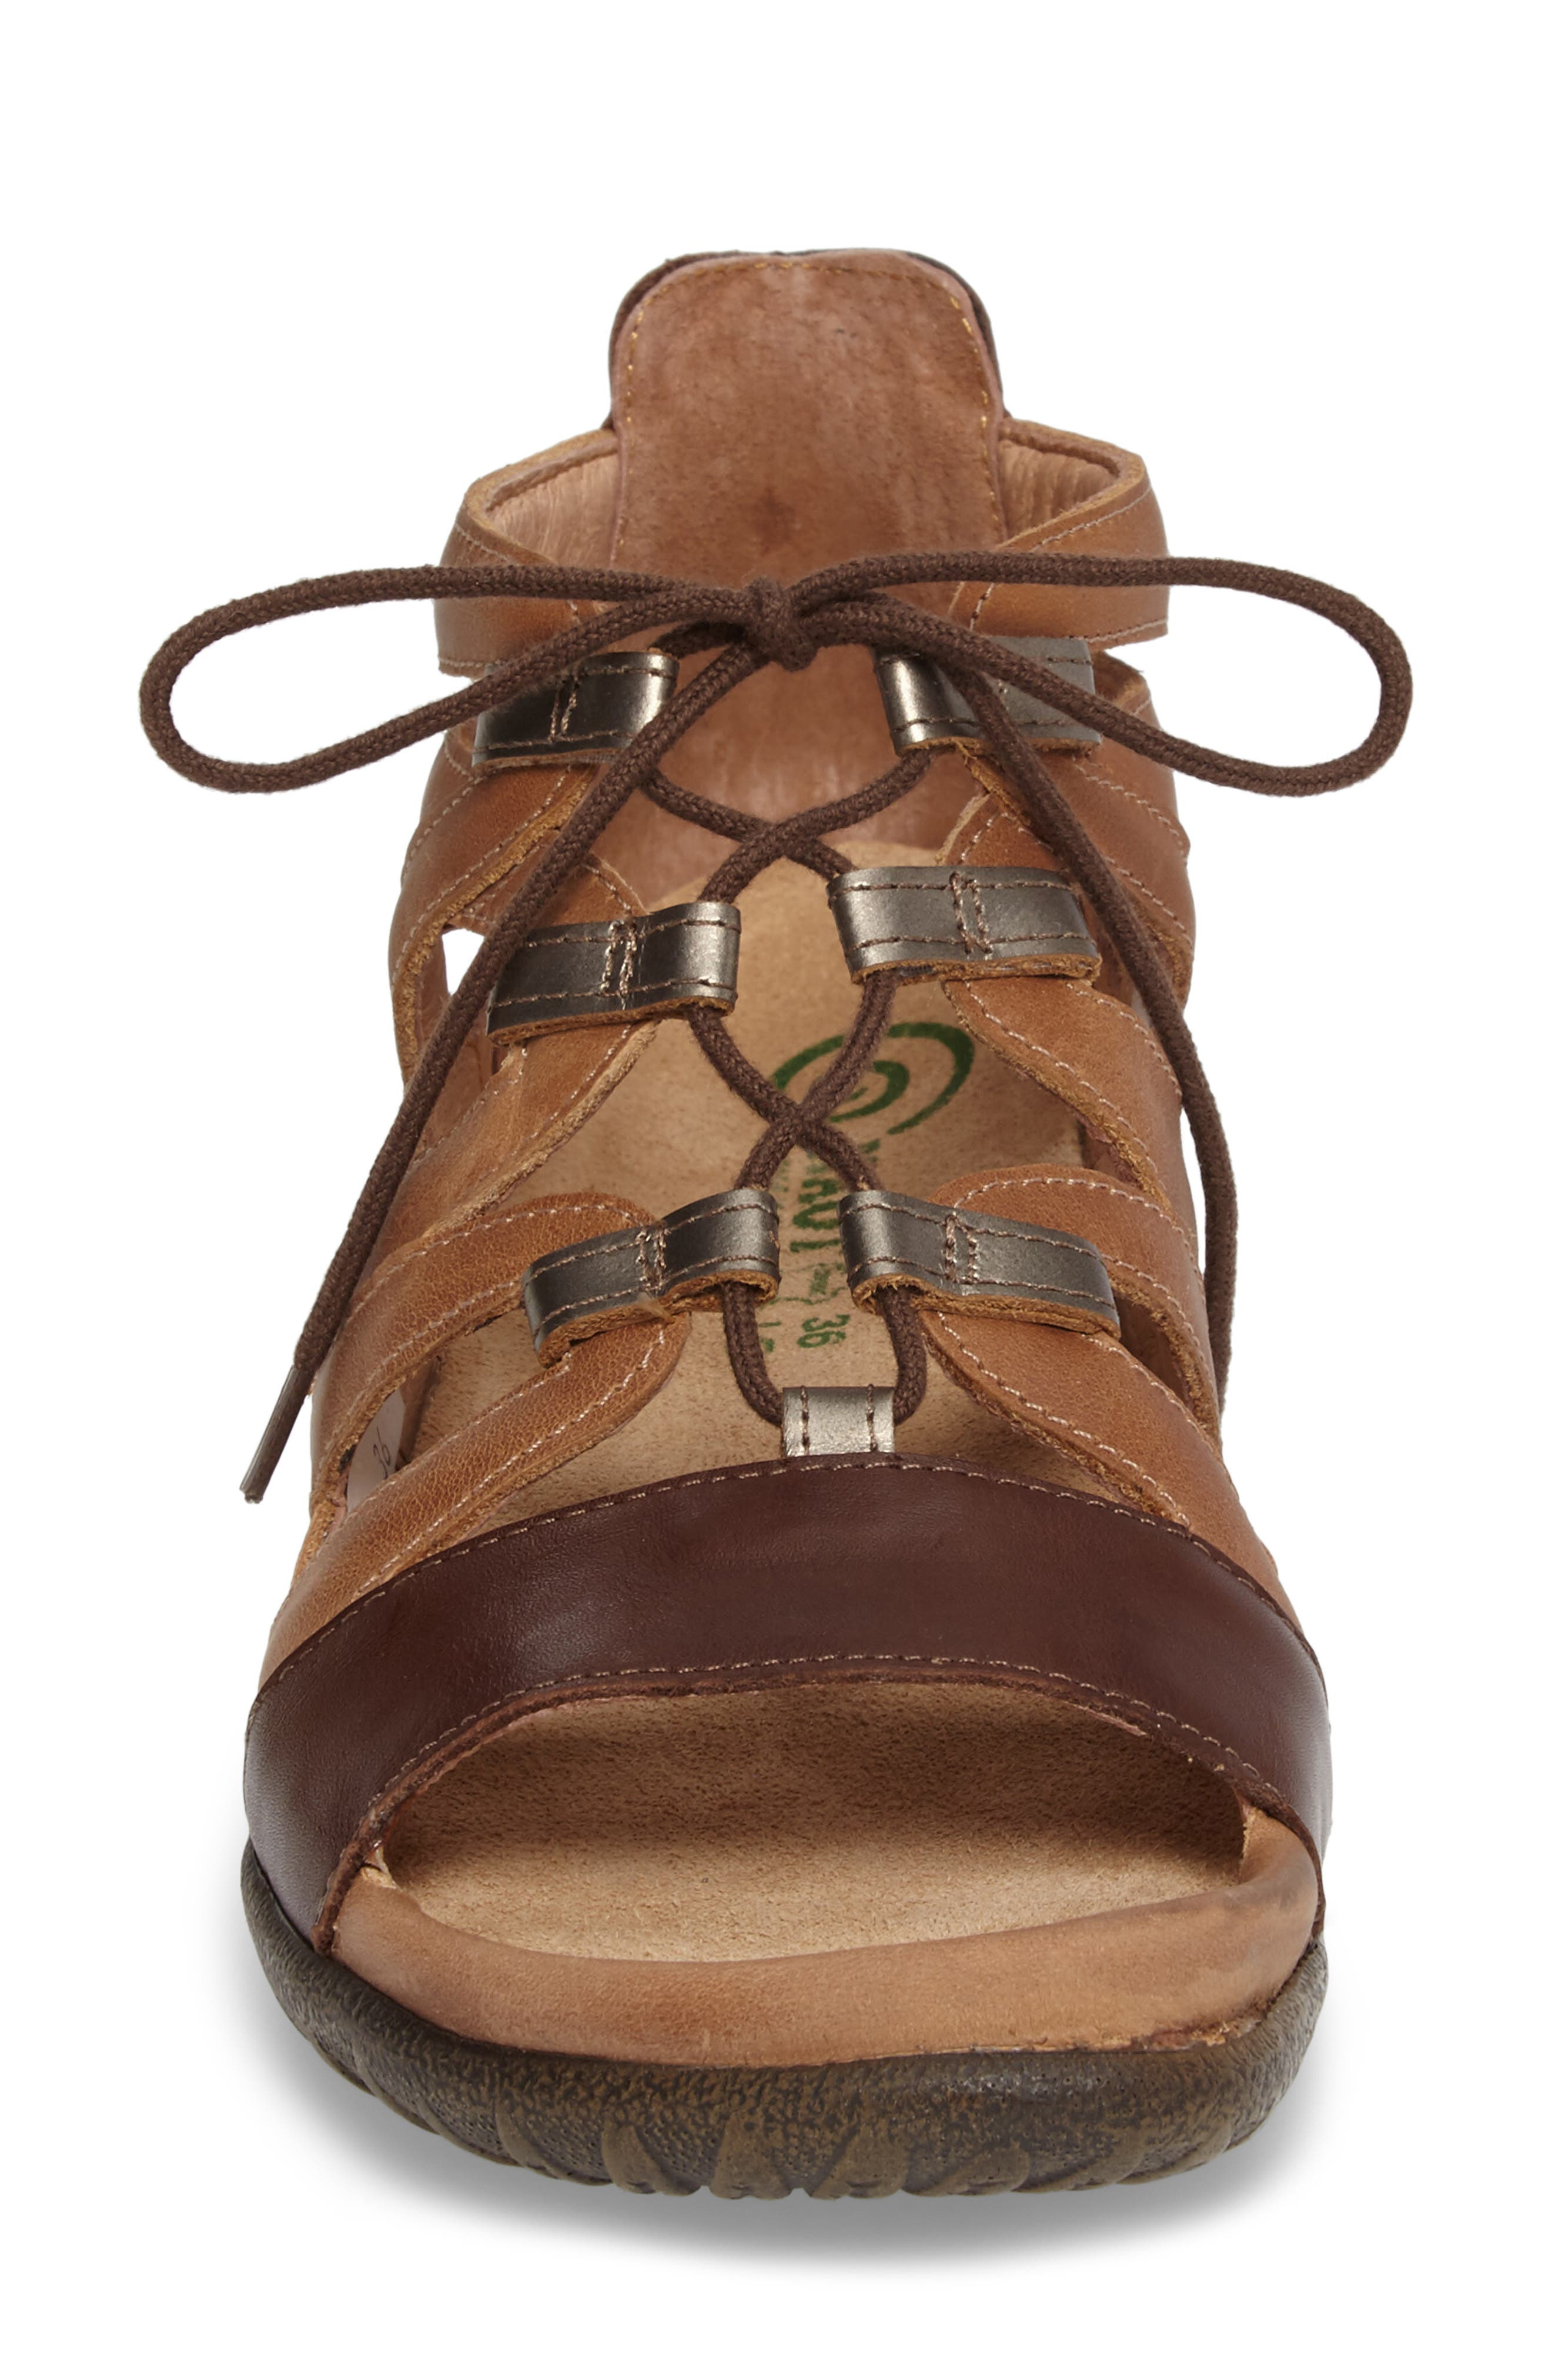 Selo Sandal,                             Alternate thumbnail 4, color,                             BROWN/ PEWTER LEATHER